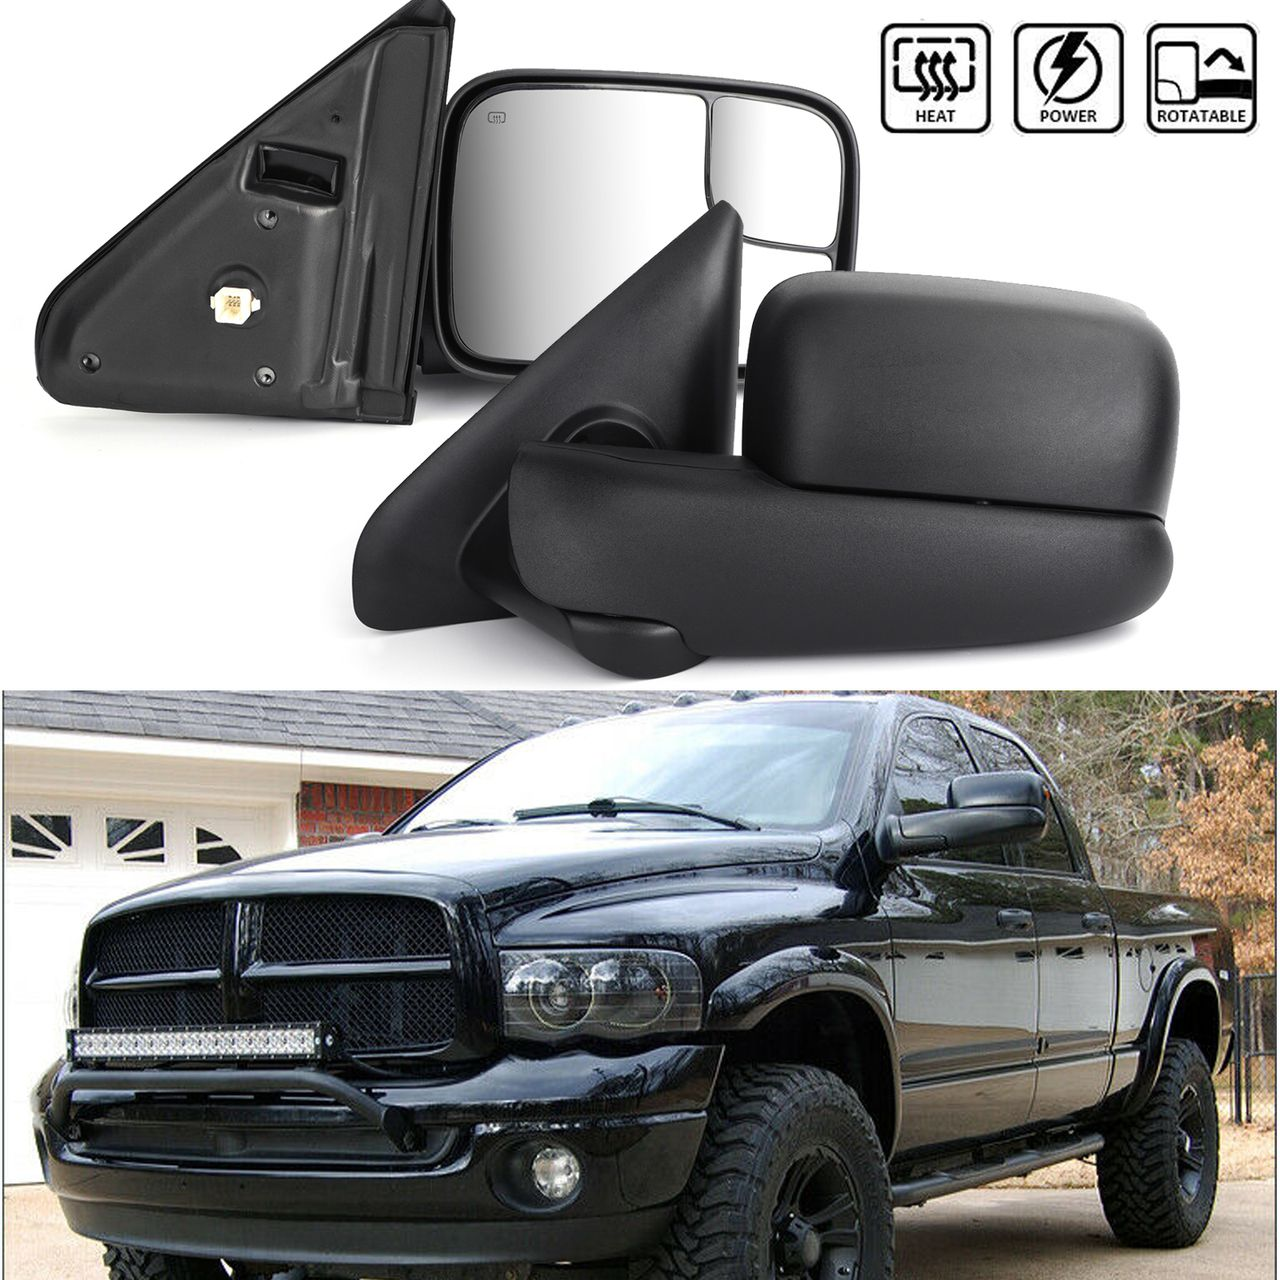 Mad Hornets Power Heated Tow Mirrors Extendable For Ram 1500 2500 3500 2002 03 04 05 06 07 2008 298 99 Http Www Madho Ram 1500 Side Mirror Towing Mirror